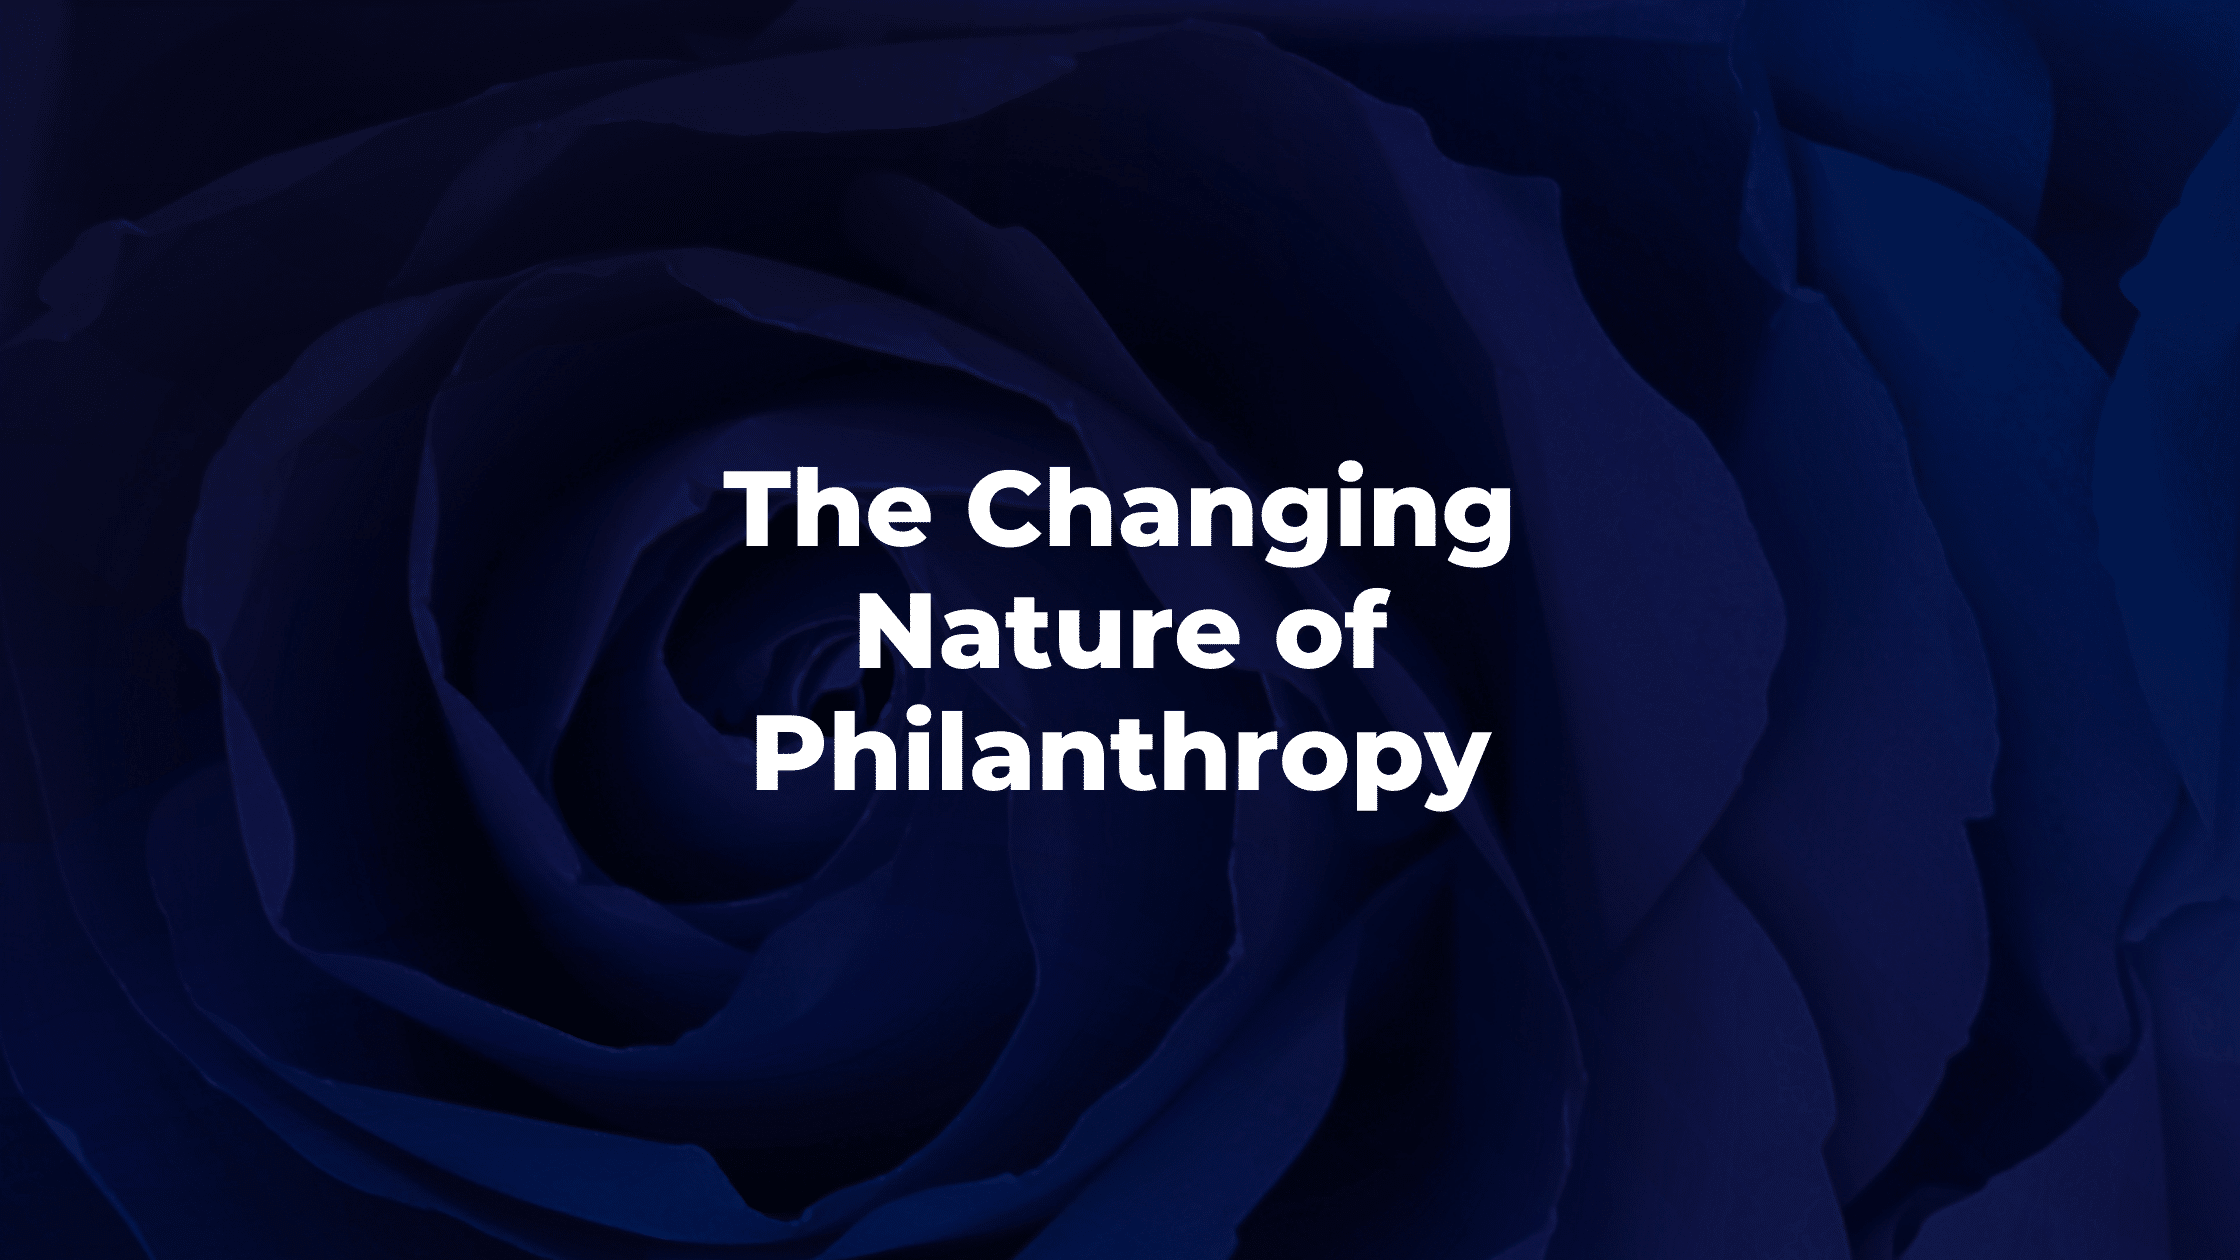 The Changing Nature of Philanthropy